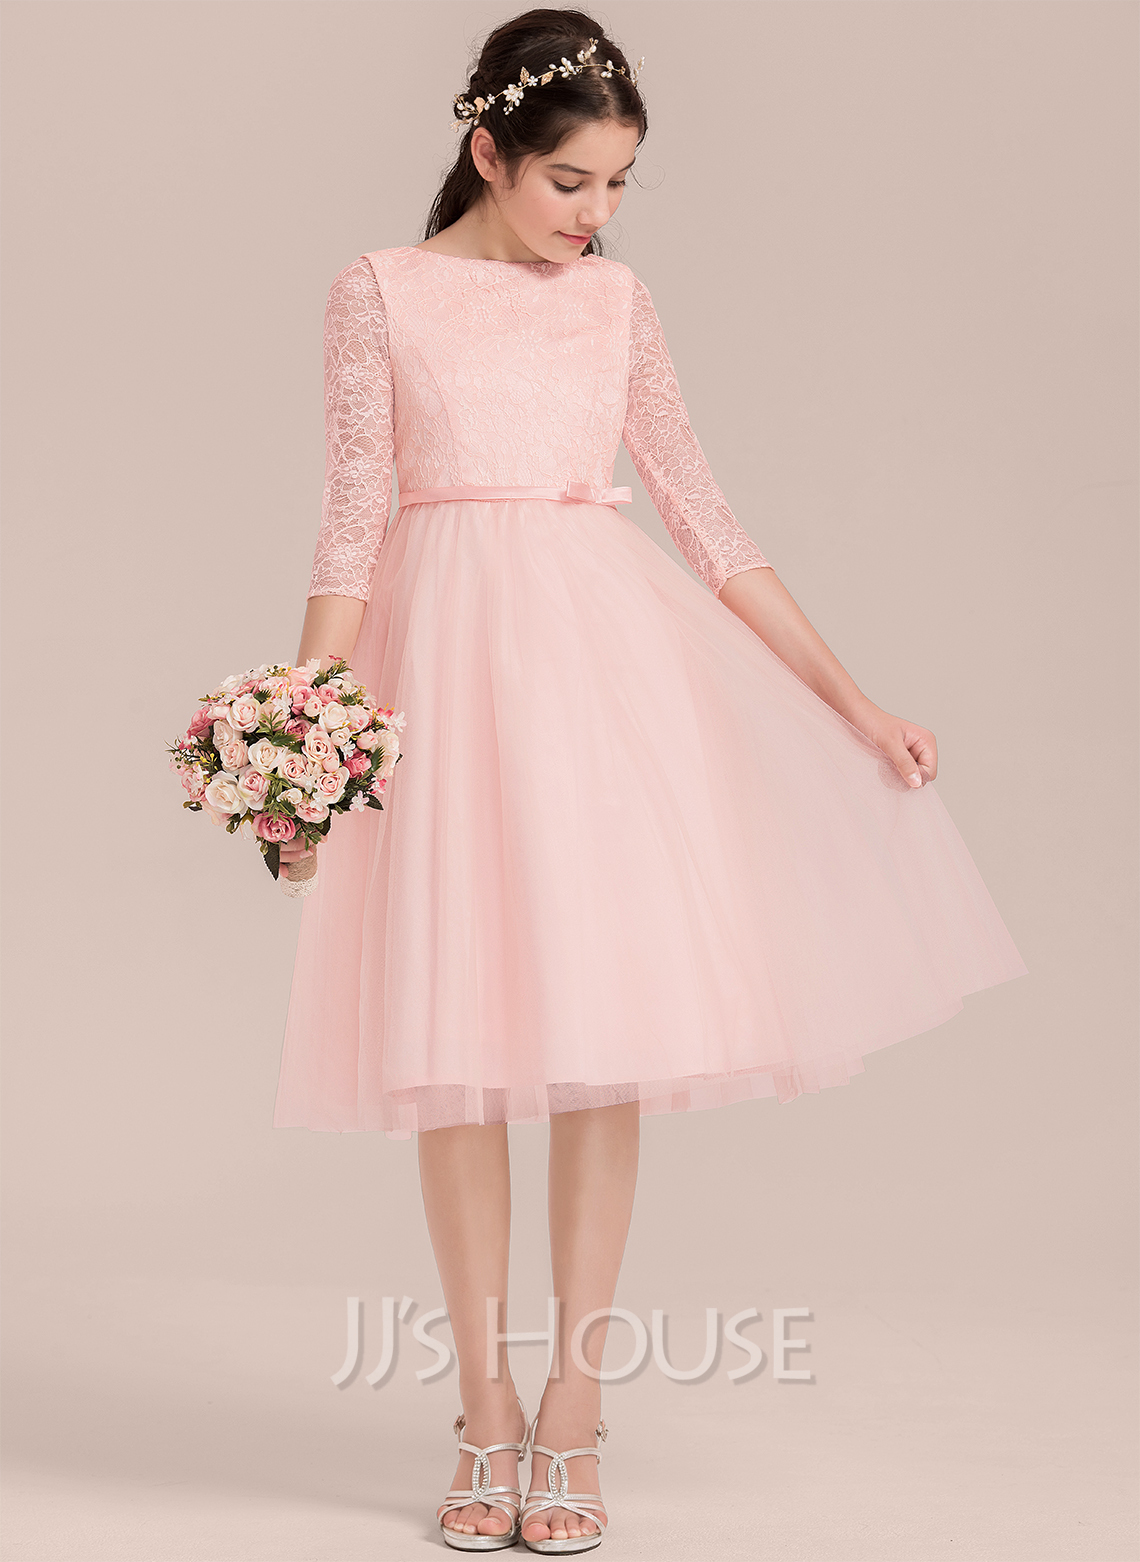 A-Line Scoop Neck Knee-Length Tulle Junior Bridesmaid Dress With Bow(s)